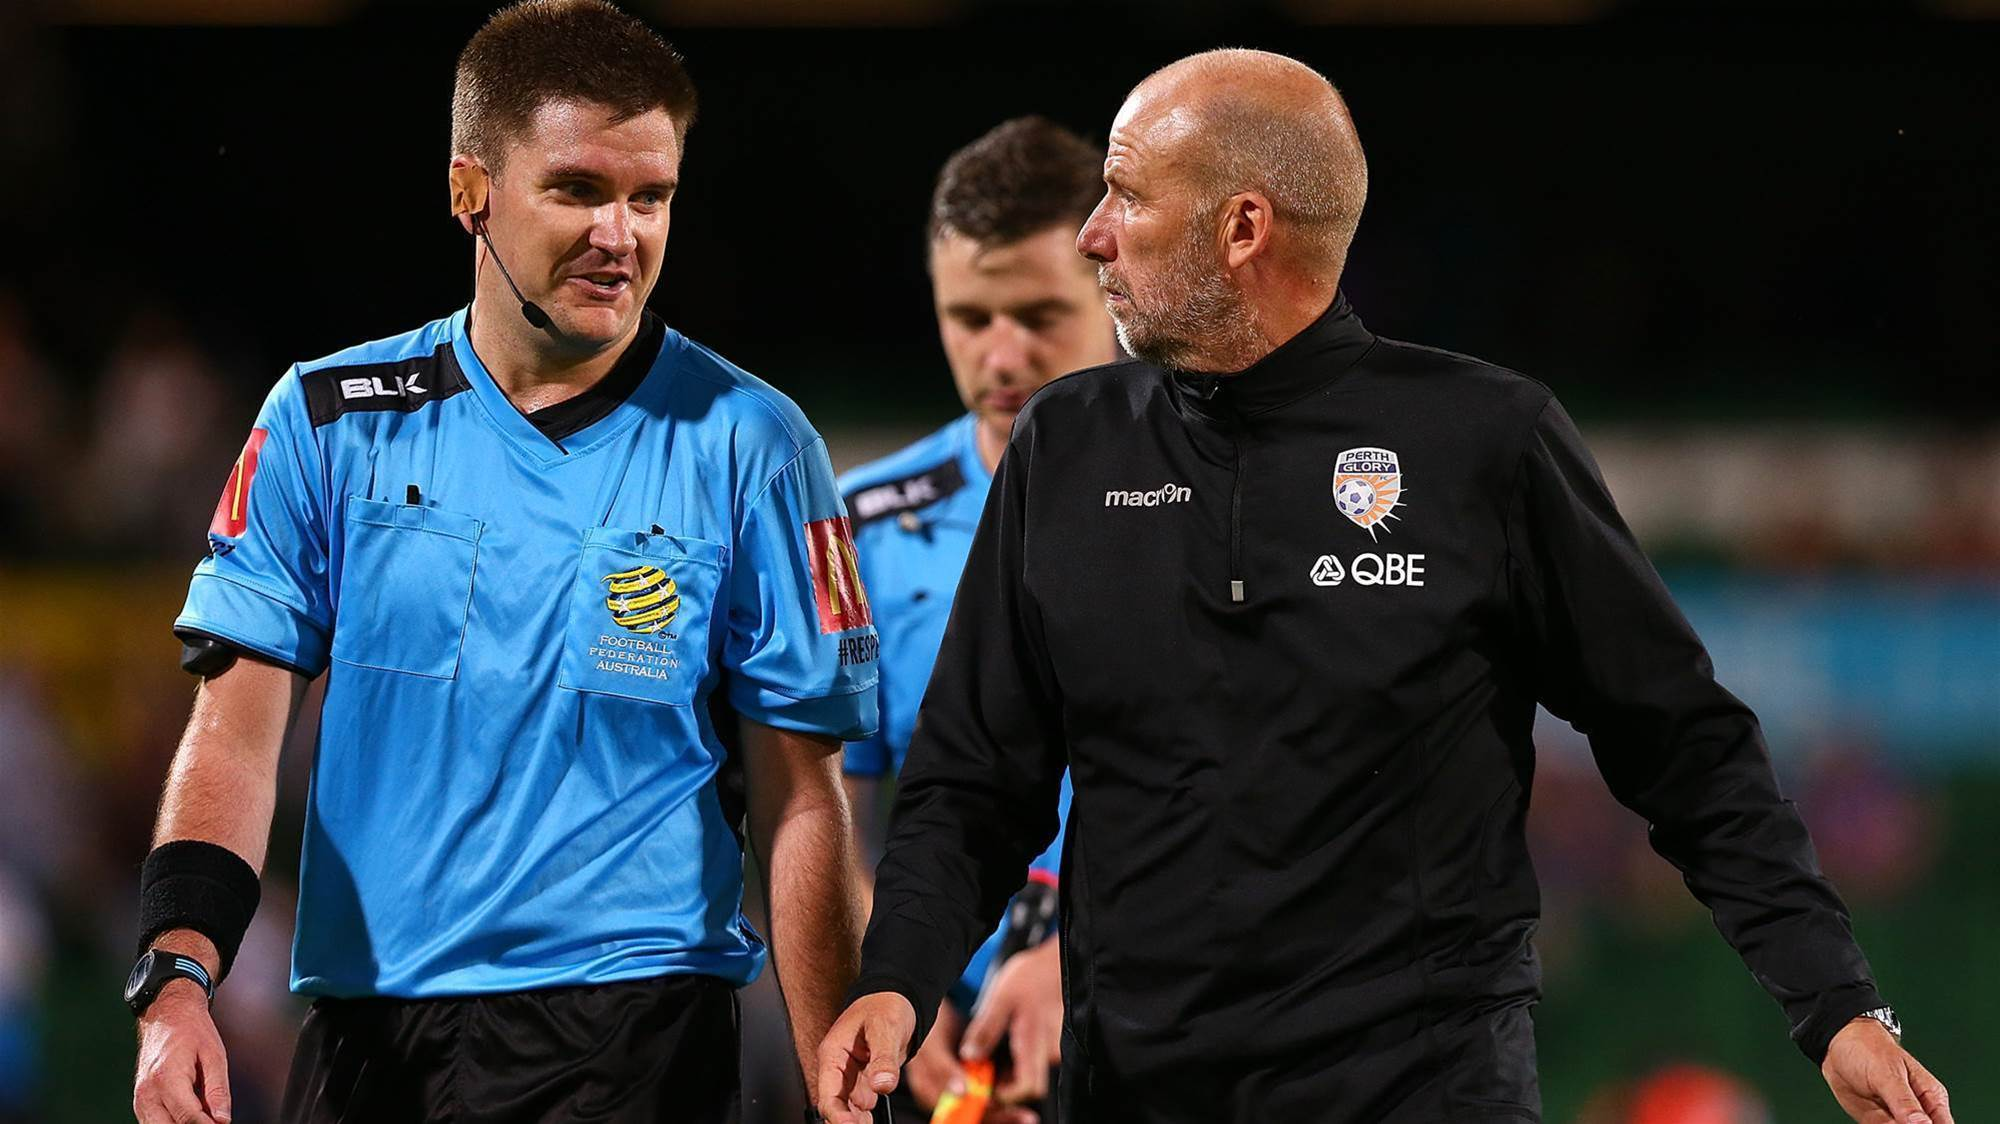 Kenny Lowe makes 'Ray Charles' jab at ref